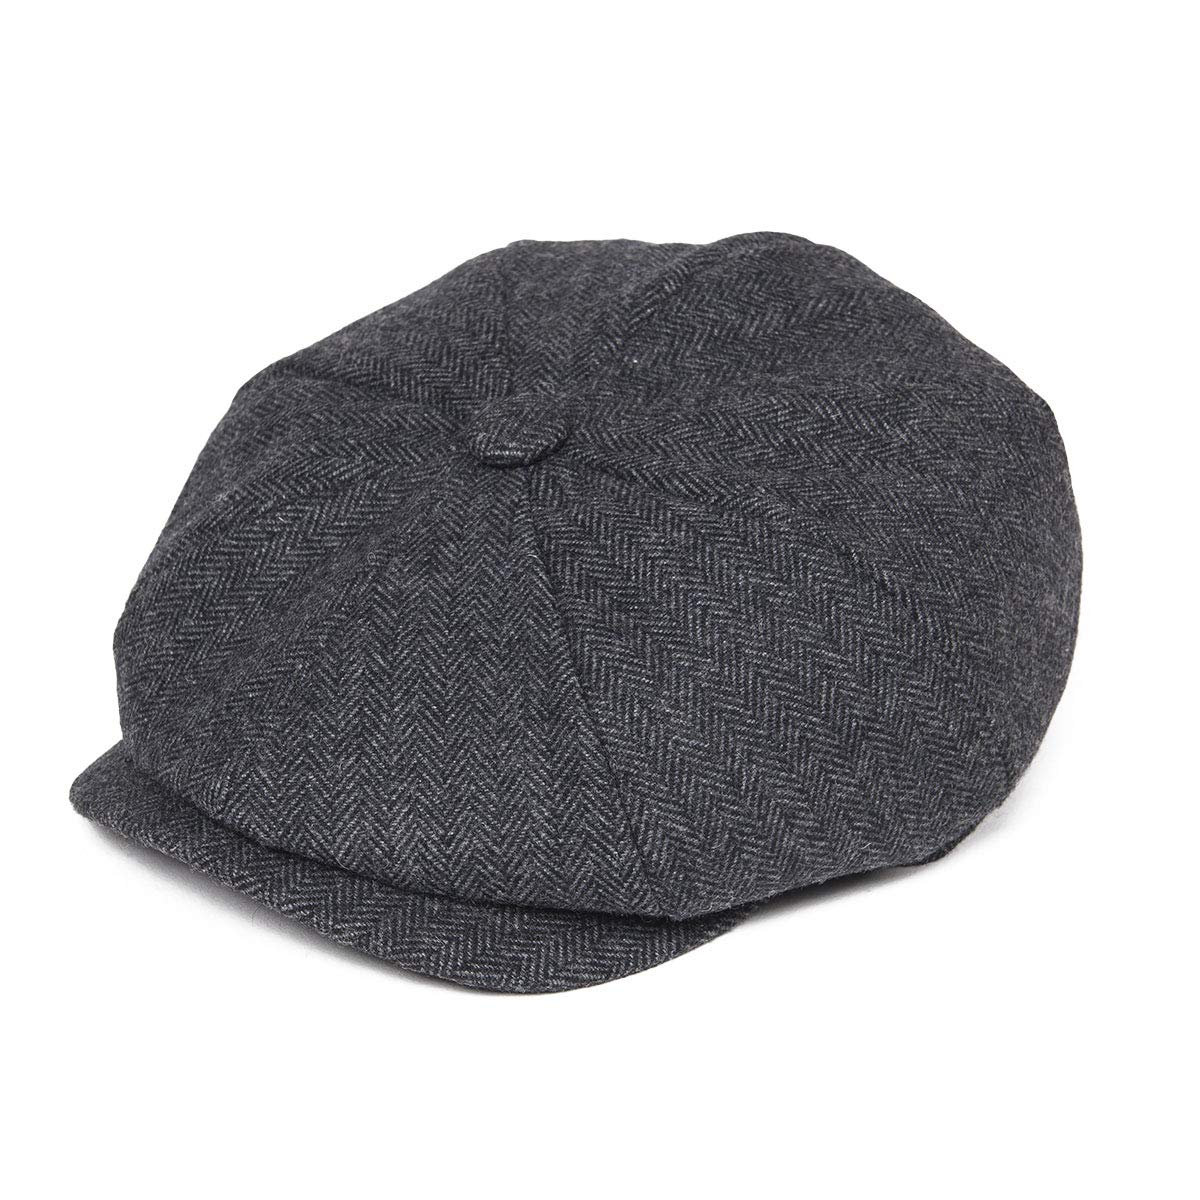 1920s Mens Hats & Caps | Gatsby, Peaky Blinders, Gangster BOTVELA Mens 8 Piece Wool Blend Newsboy Flat Cap Herringbone Pattern in Classic 5 Colors $19.99 AT vintagedancer.com